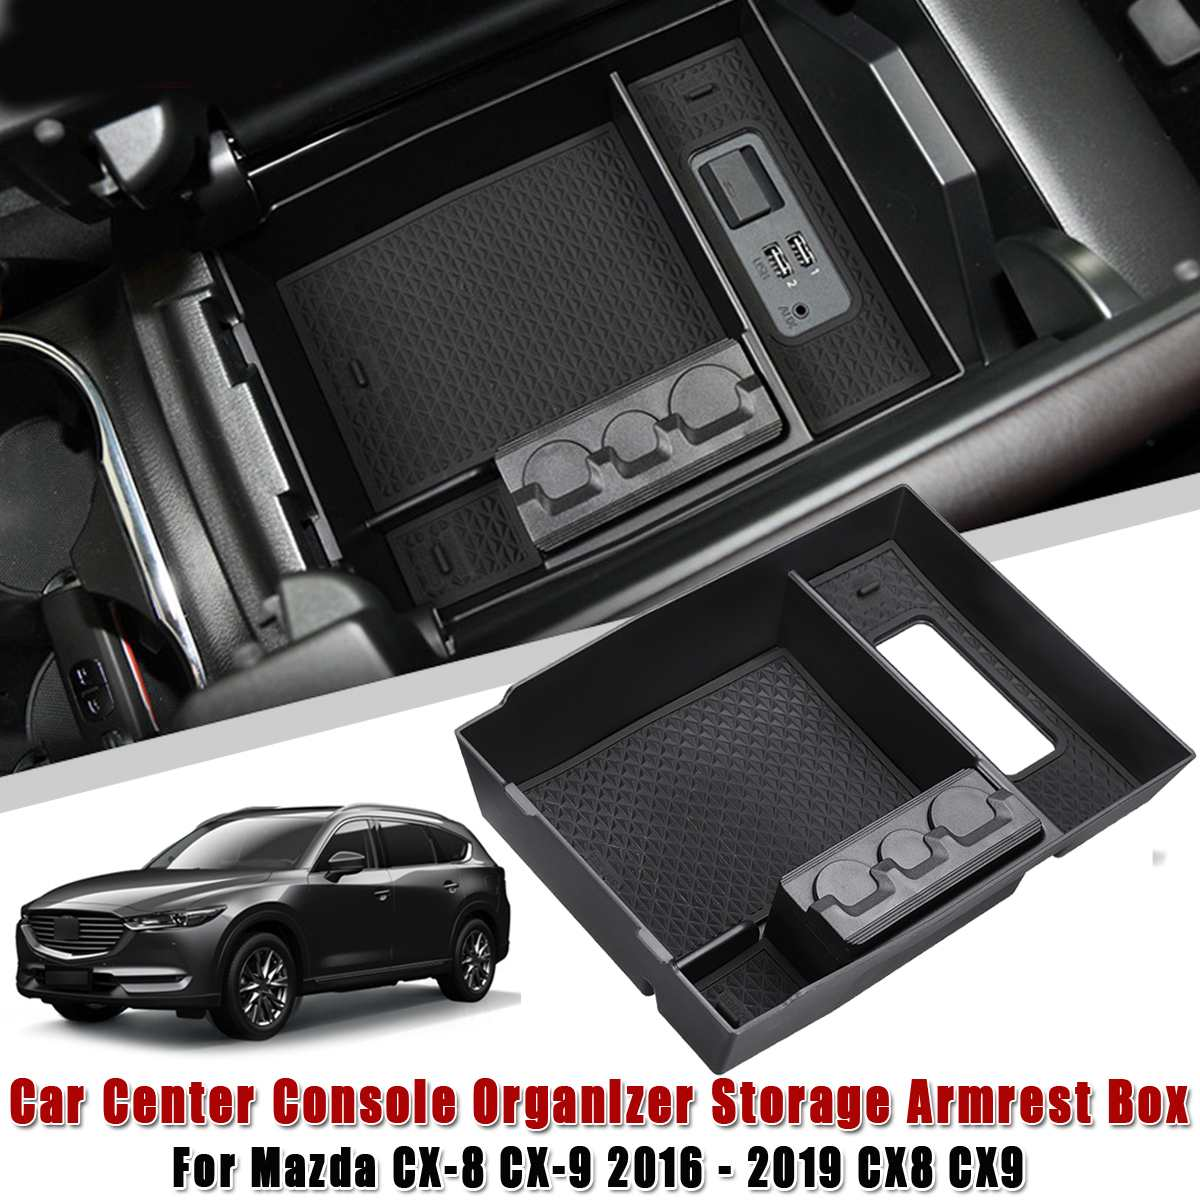 Car Central Armrest Box Stowing Tidying Center Console Organizer Tray For <font><b>MAZDA</b></font> <font><b>CX</b></font>-8 <font><b>CX</b></font>-<font><b>9</b></font> 2016 - 2019 CX8 CX9 Car <font><b>Accessories</b></font> image